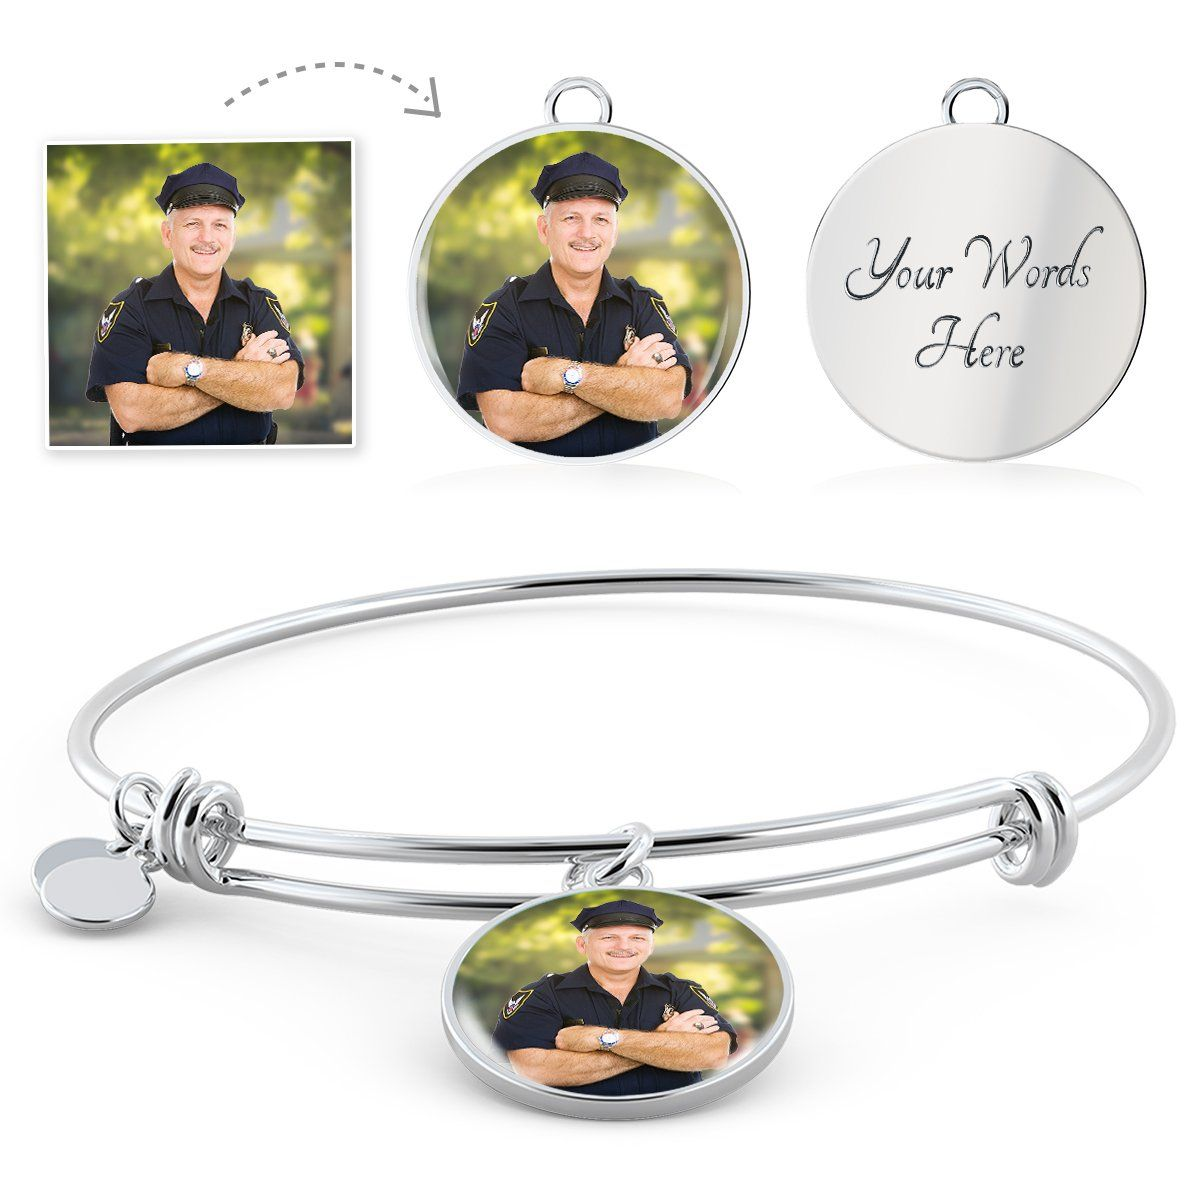 Law Enforcement Personalized Photo Circle Bangle Bracelet - Heroic Defender